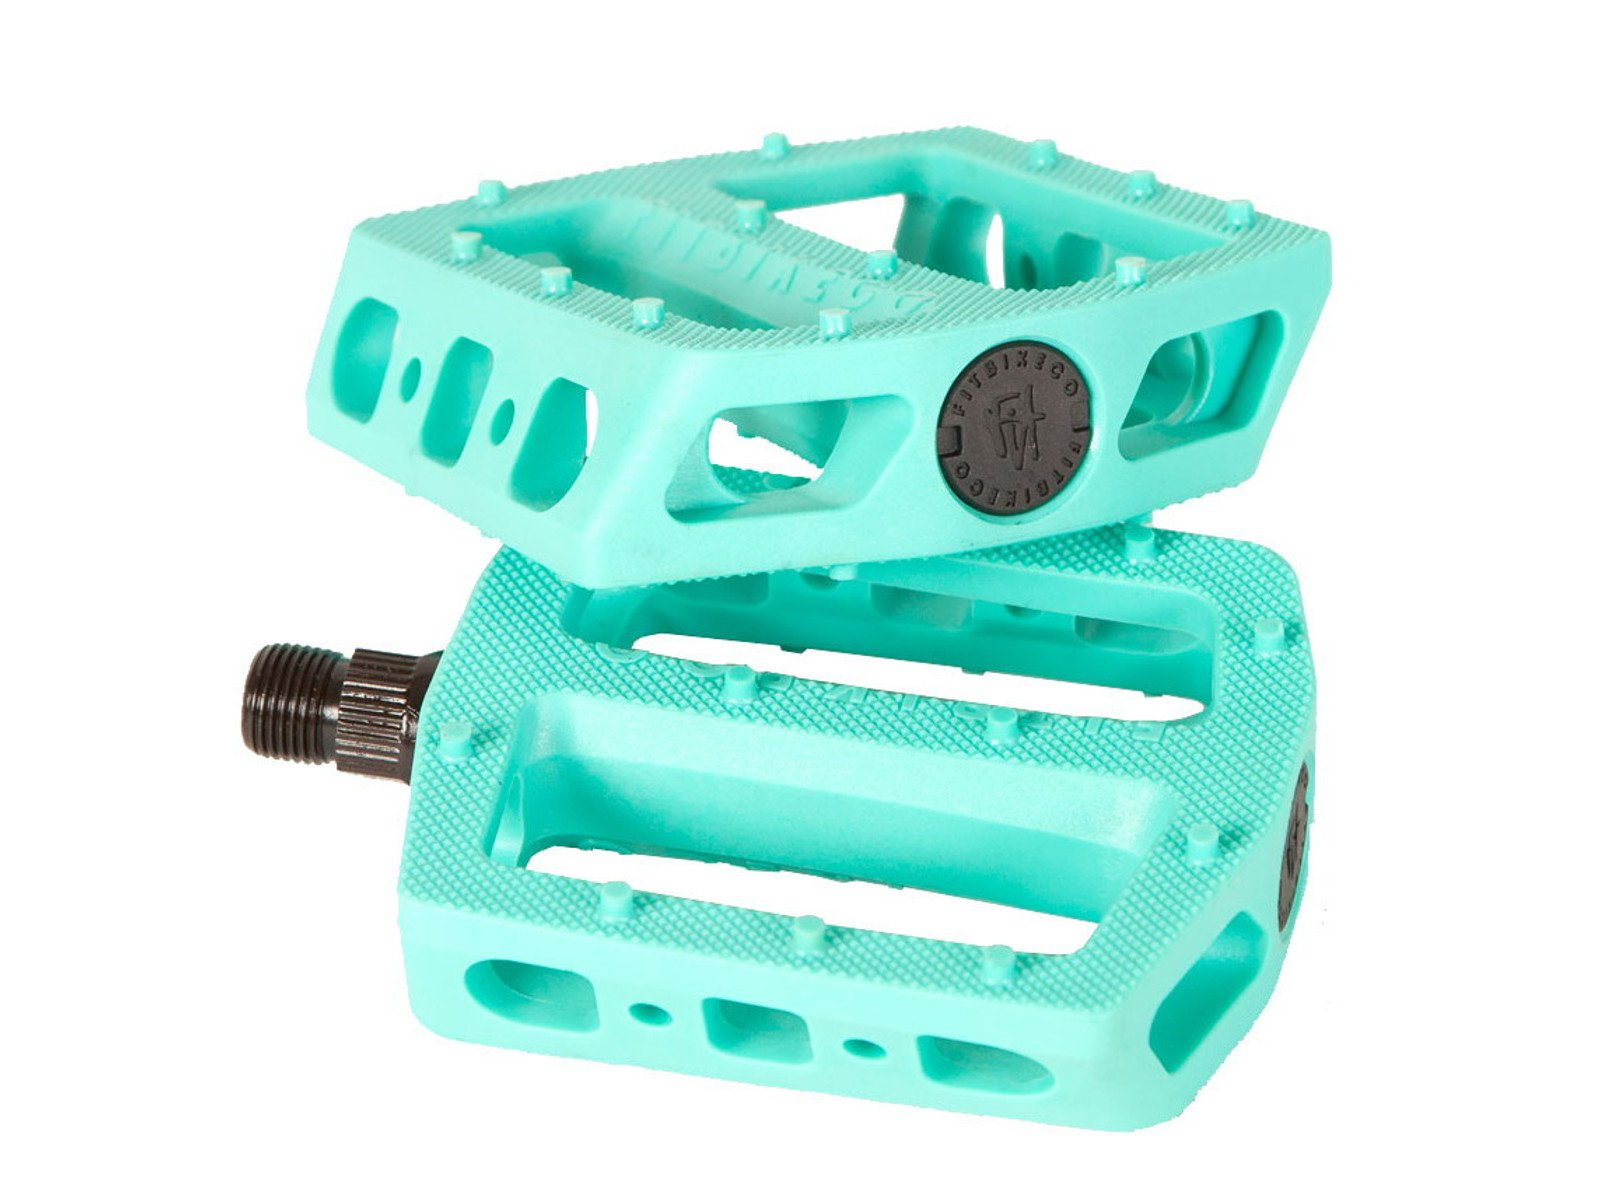 SHADOW CONSPIRACY SURFACE PLASTIC BMX BIKE PEDALS FIT HARO SUBROSA CULT SE BLUE